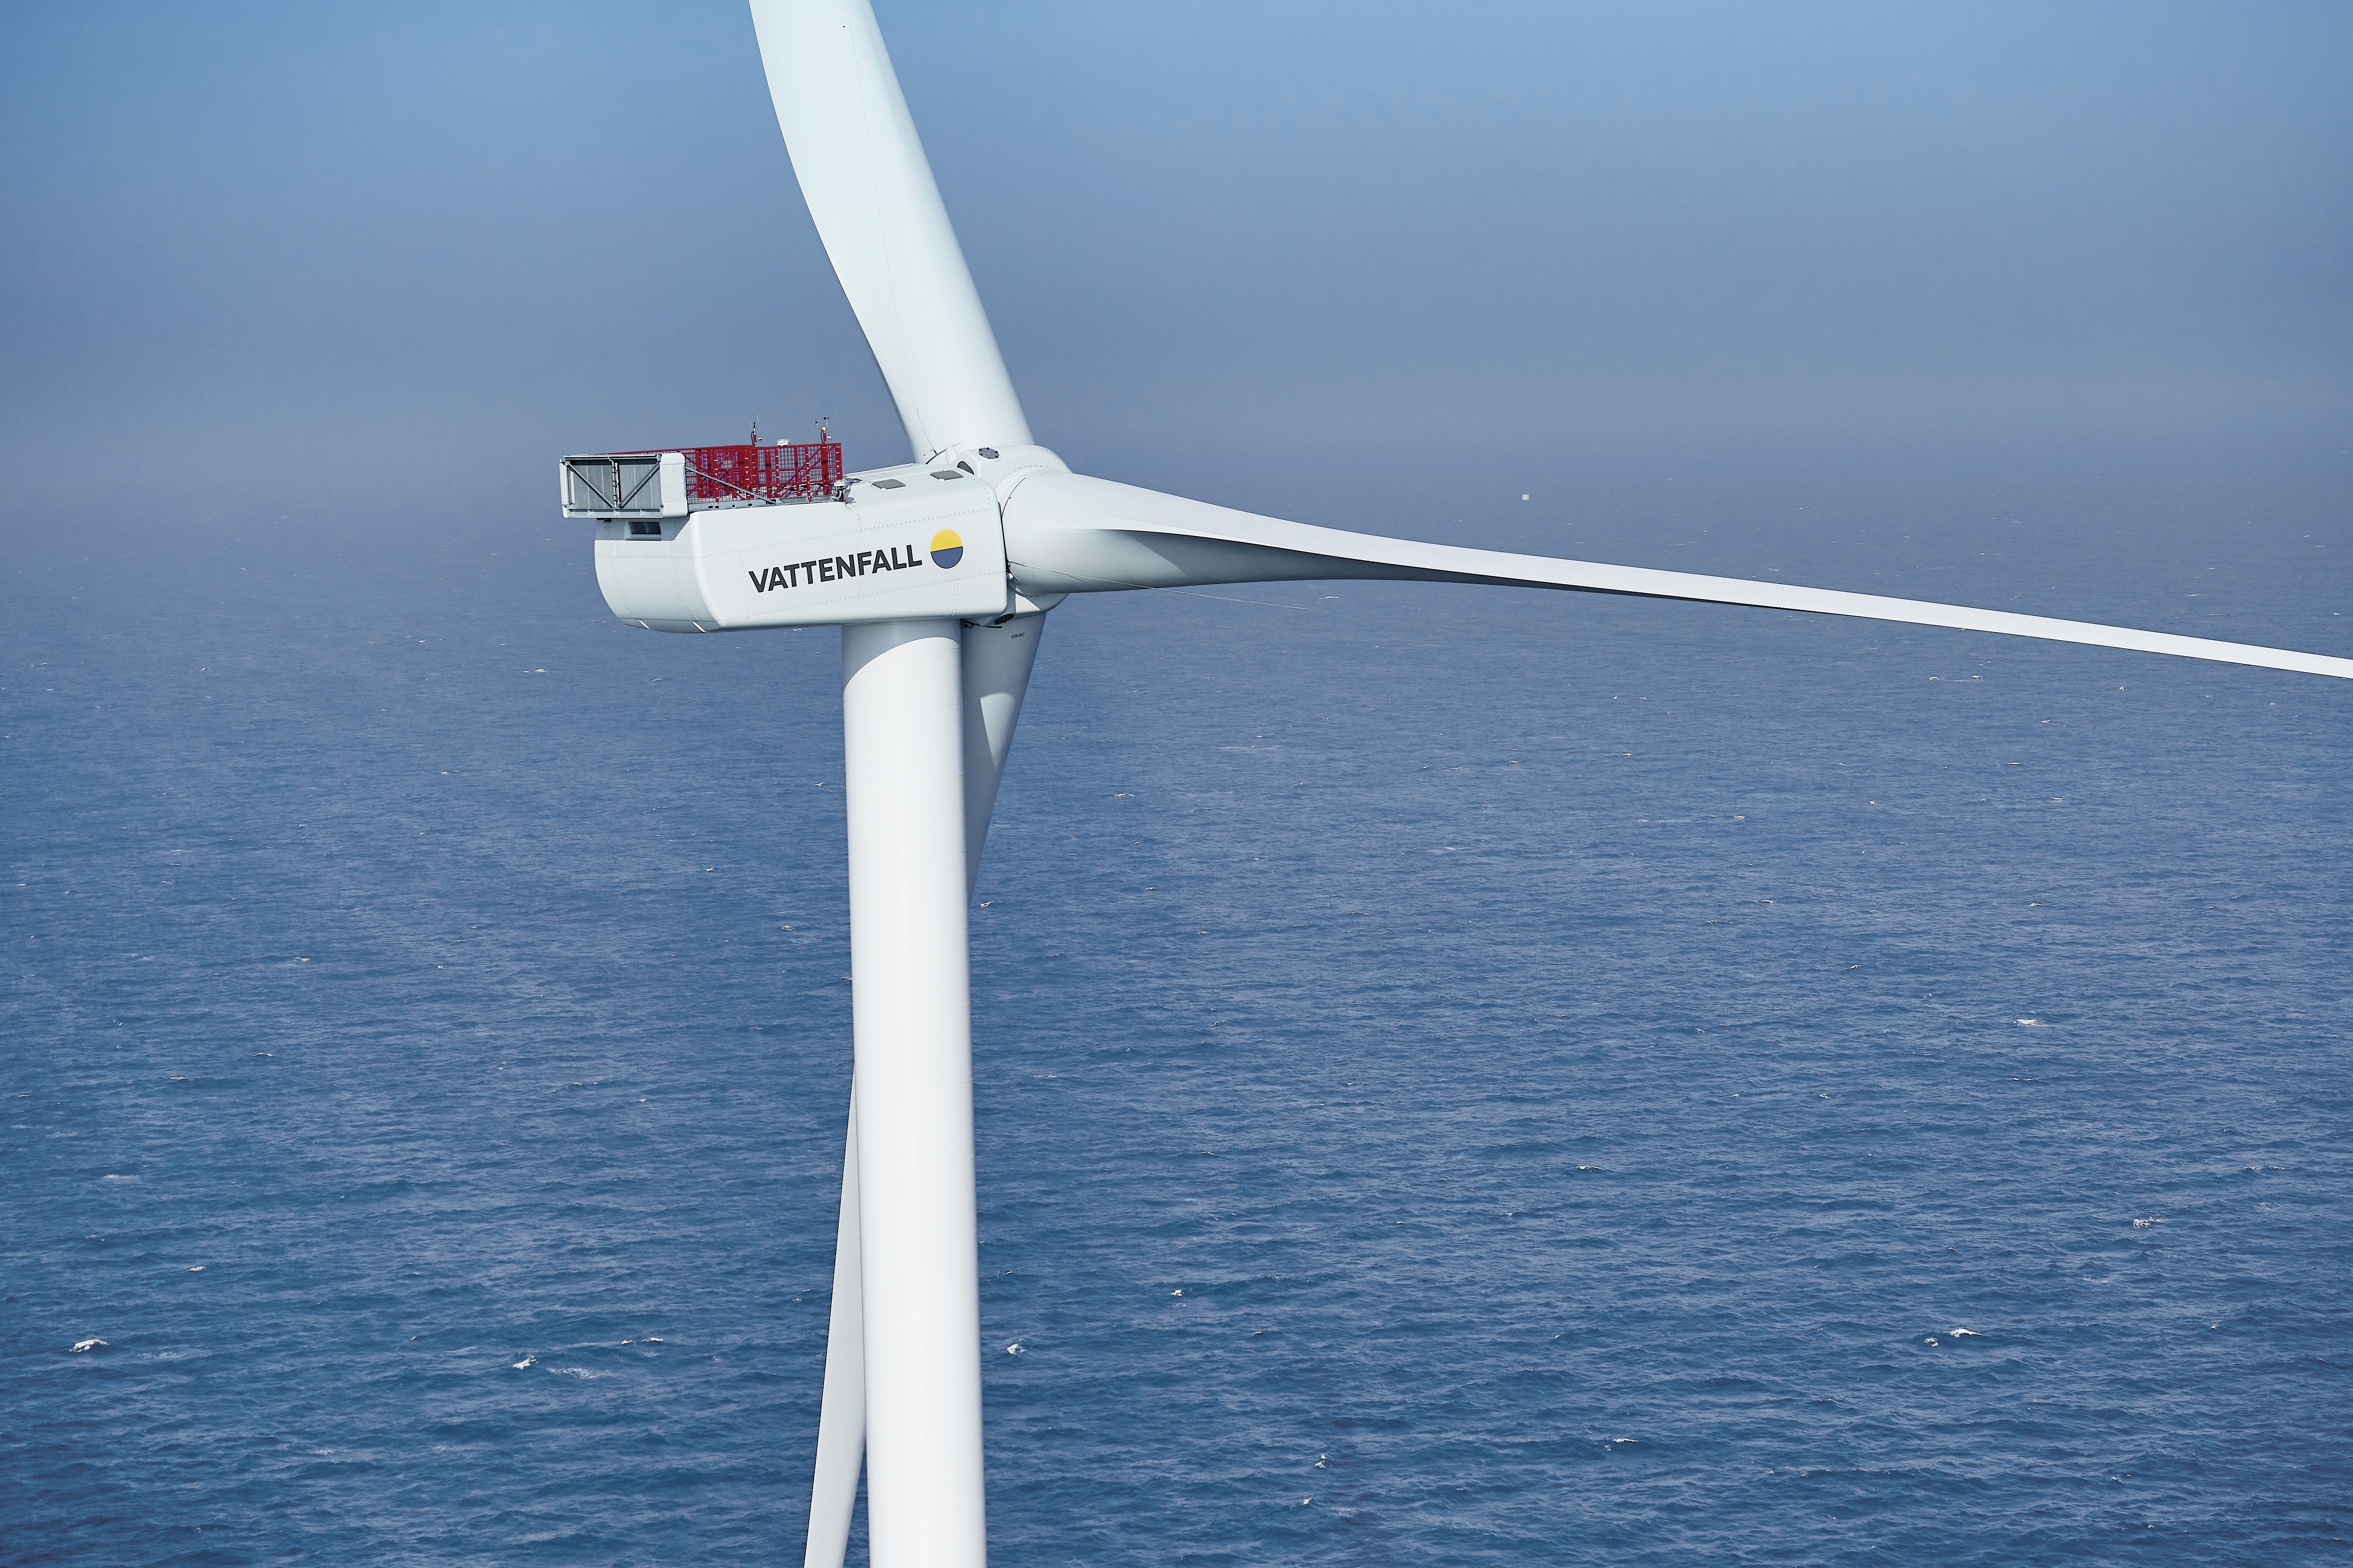 Image of a wind turbine located in the sea.